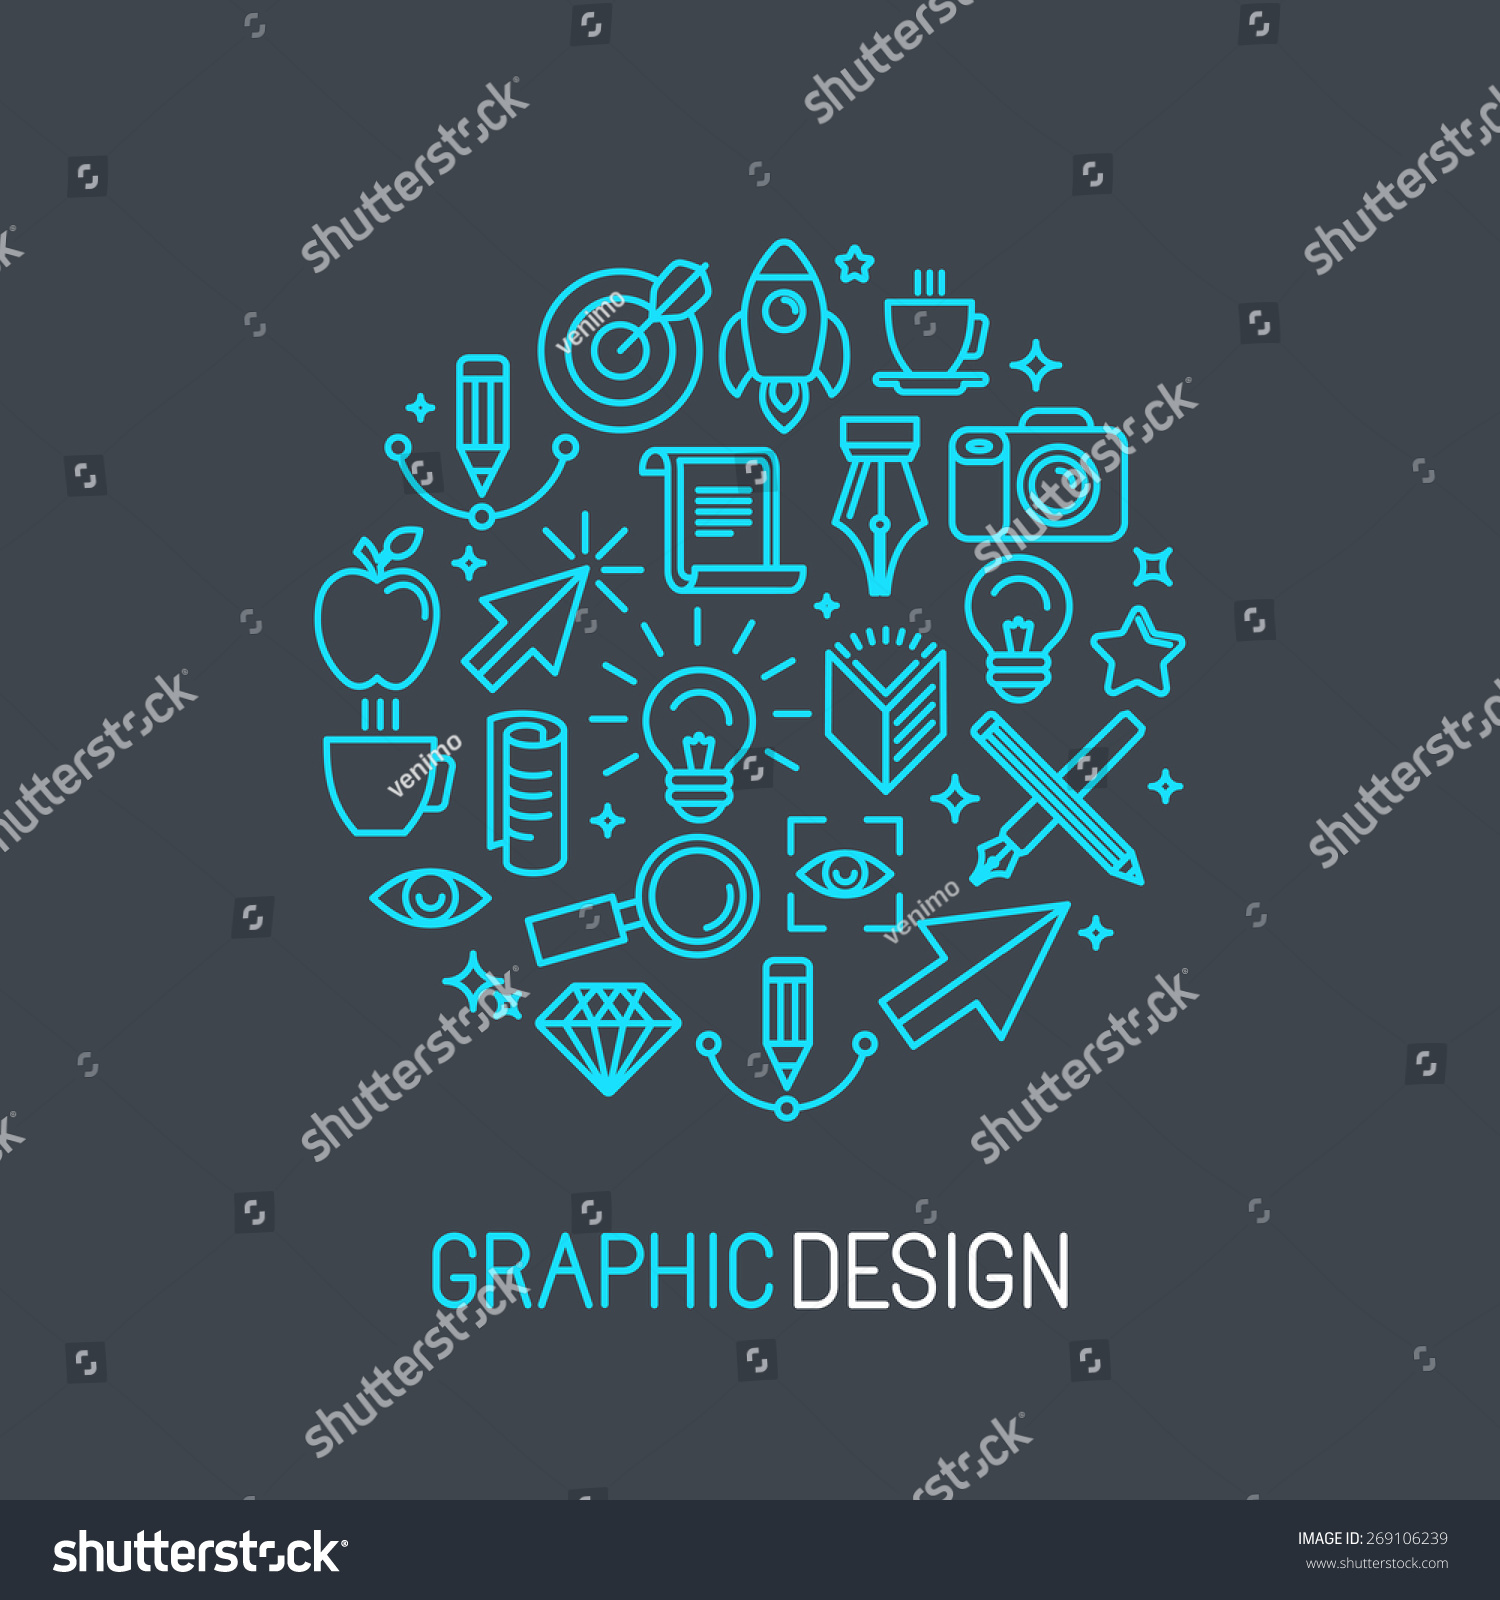 Linear Line Graphic Design Elements & Infographic Template ...  |Linear Graphic Art